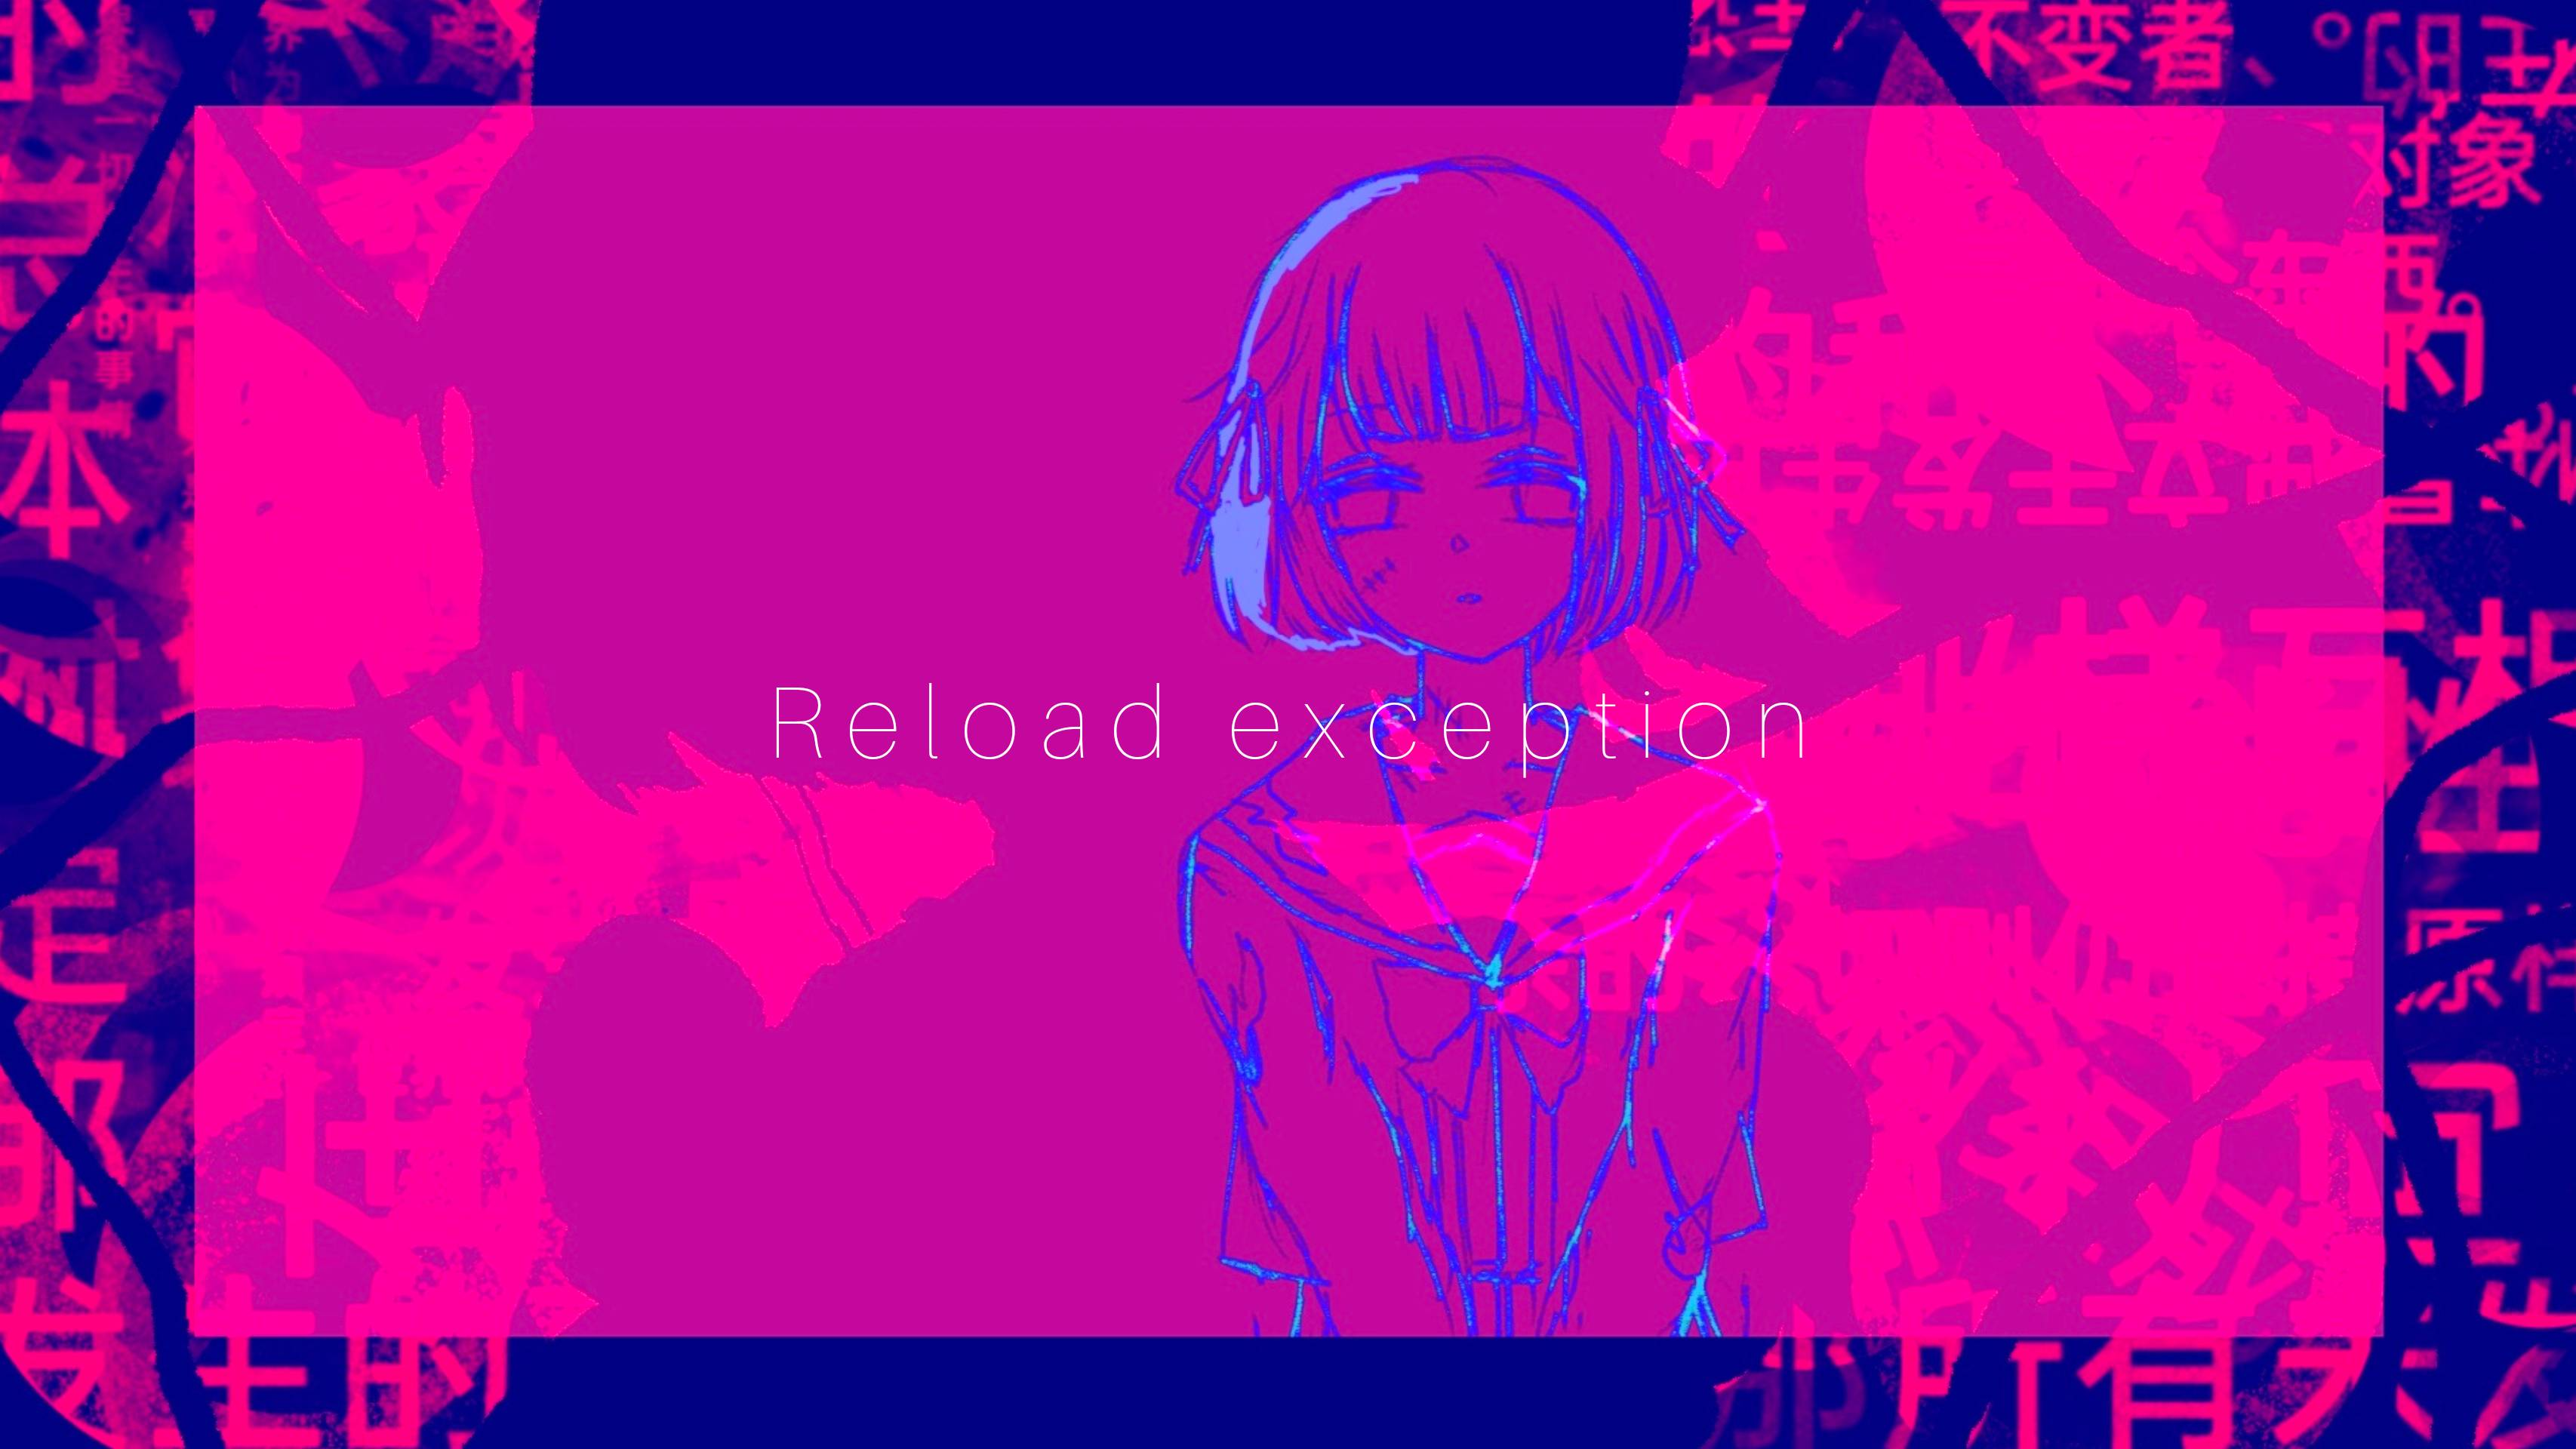 Reload exception